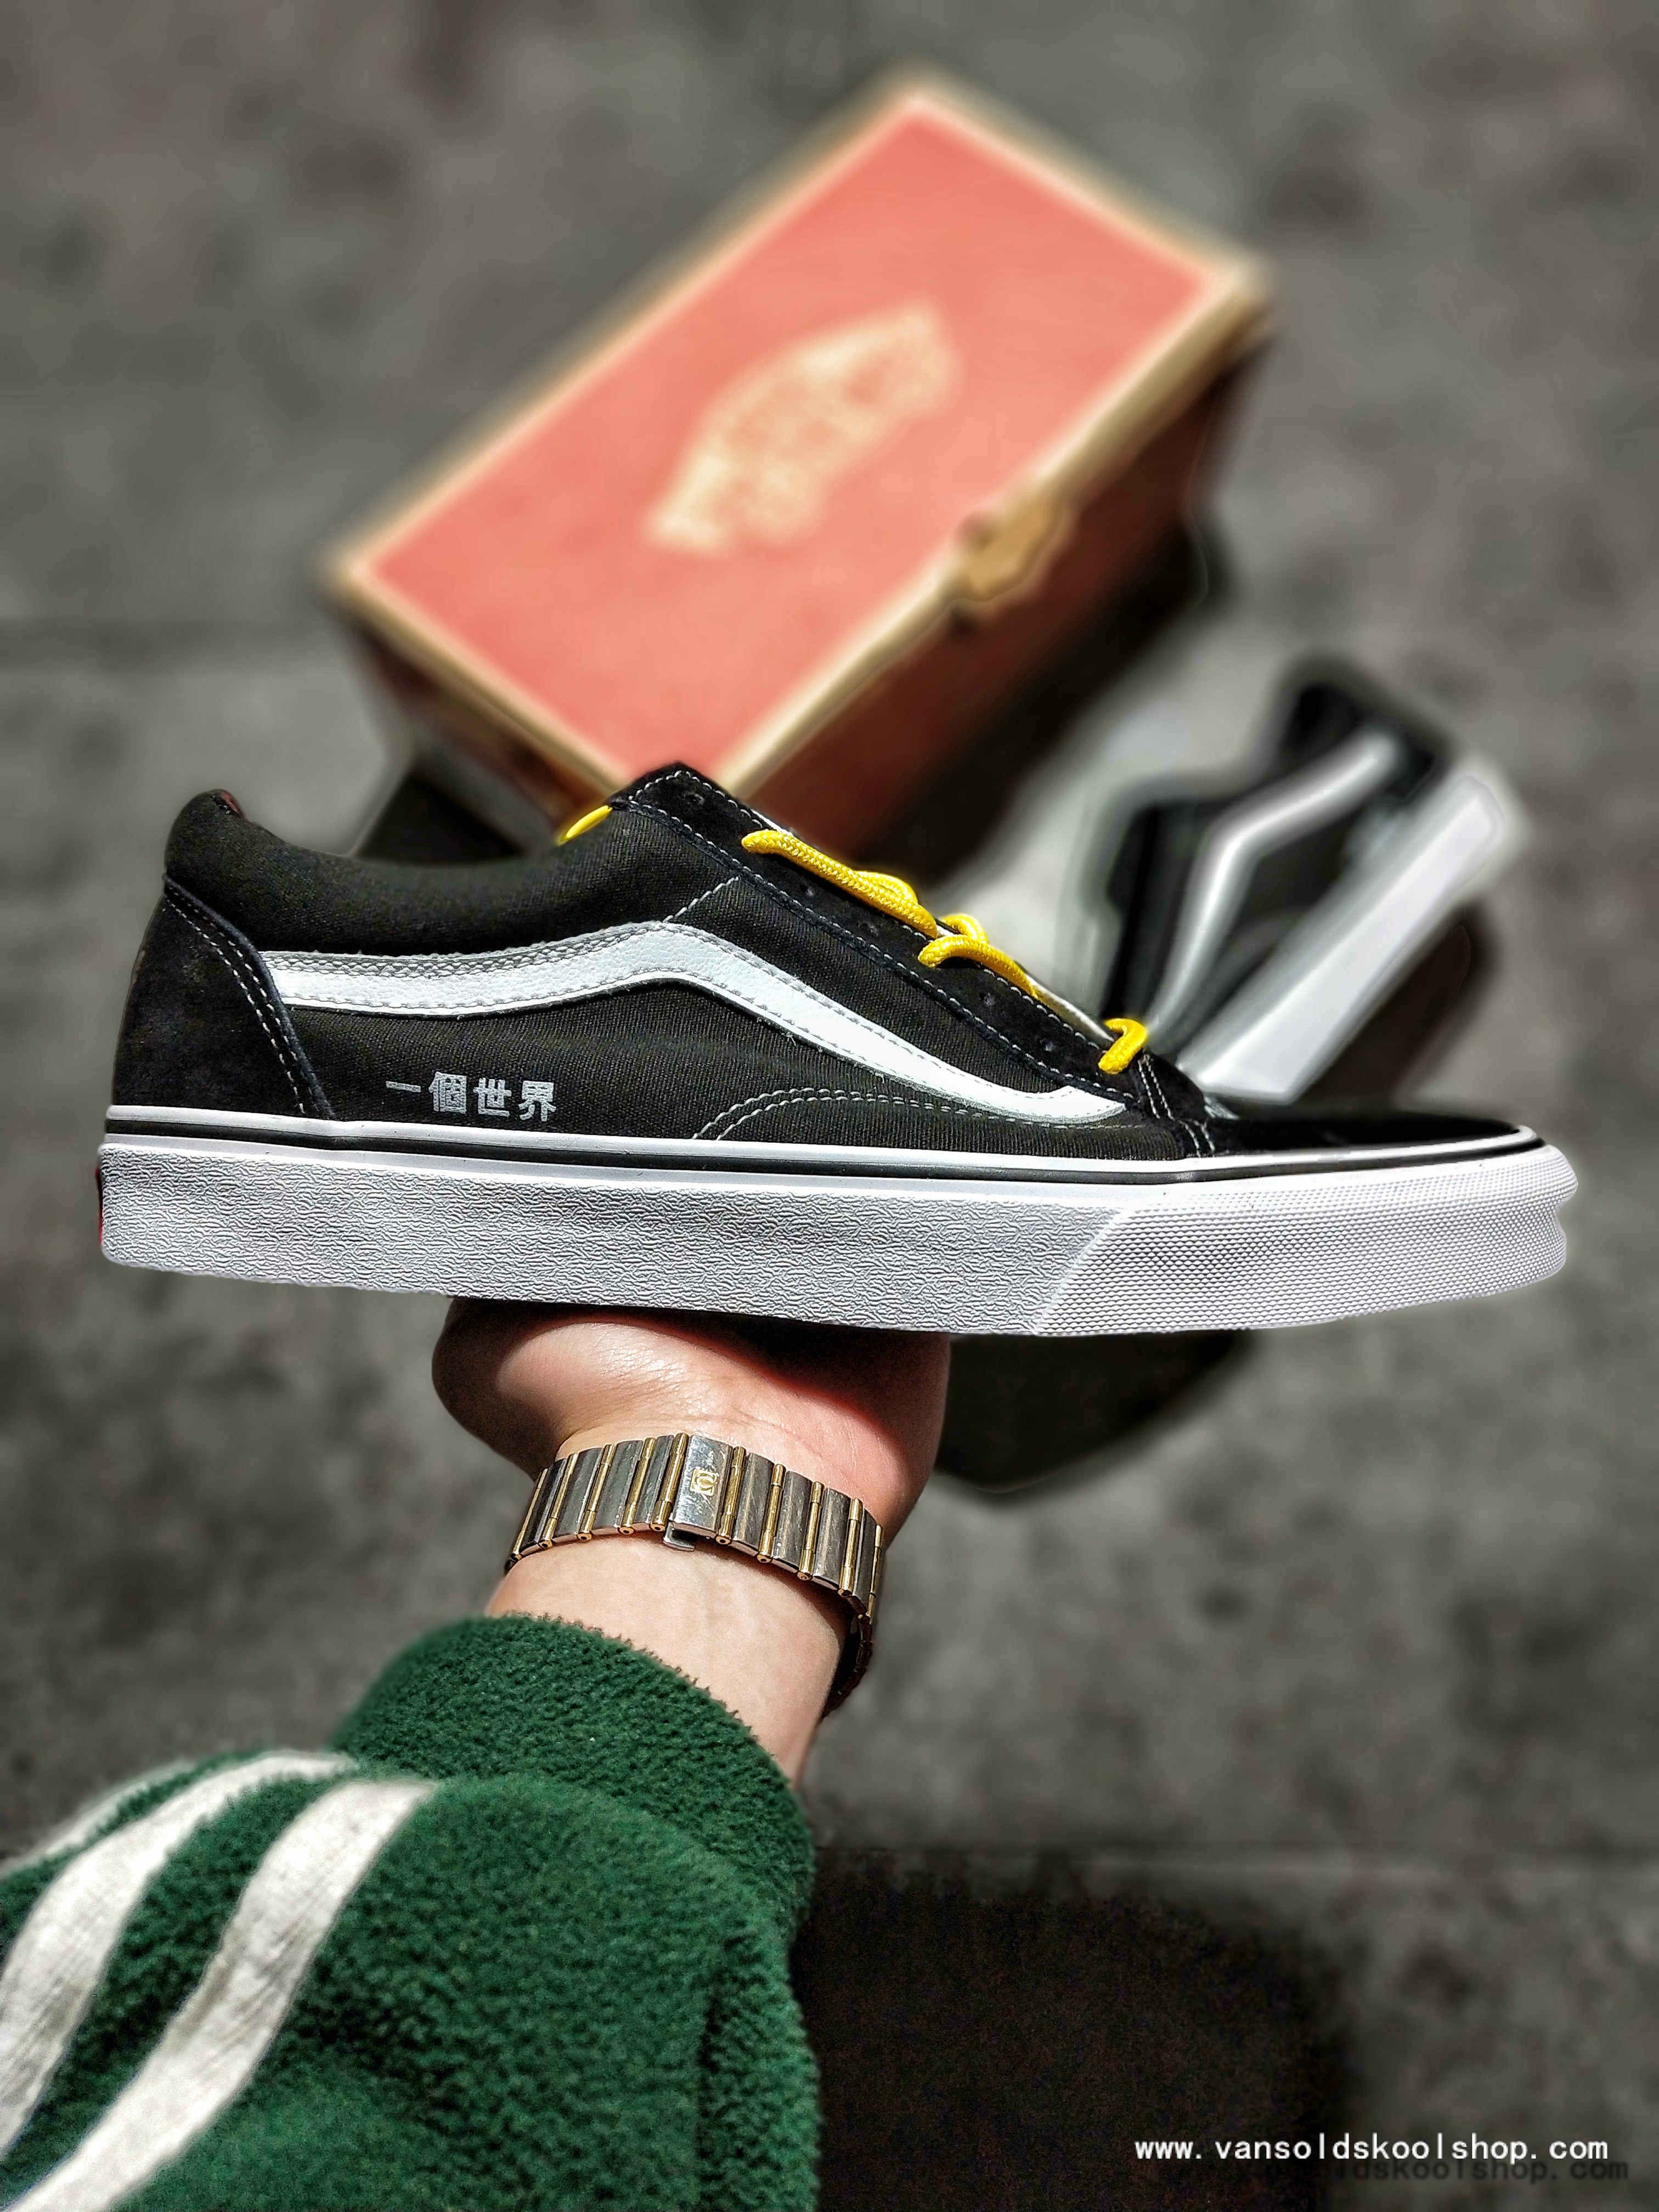 6876ce9d38 HIGH QUALITY VANS CLASSIC OLD SKOOL ONE WORLD BLACK WHITE SKATE SHOE FOR  SALE